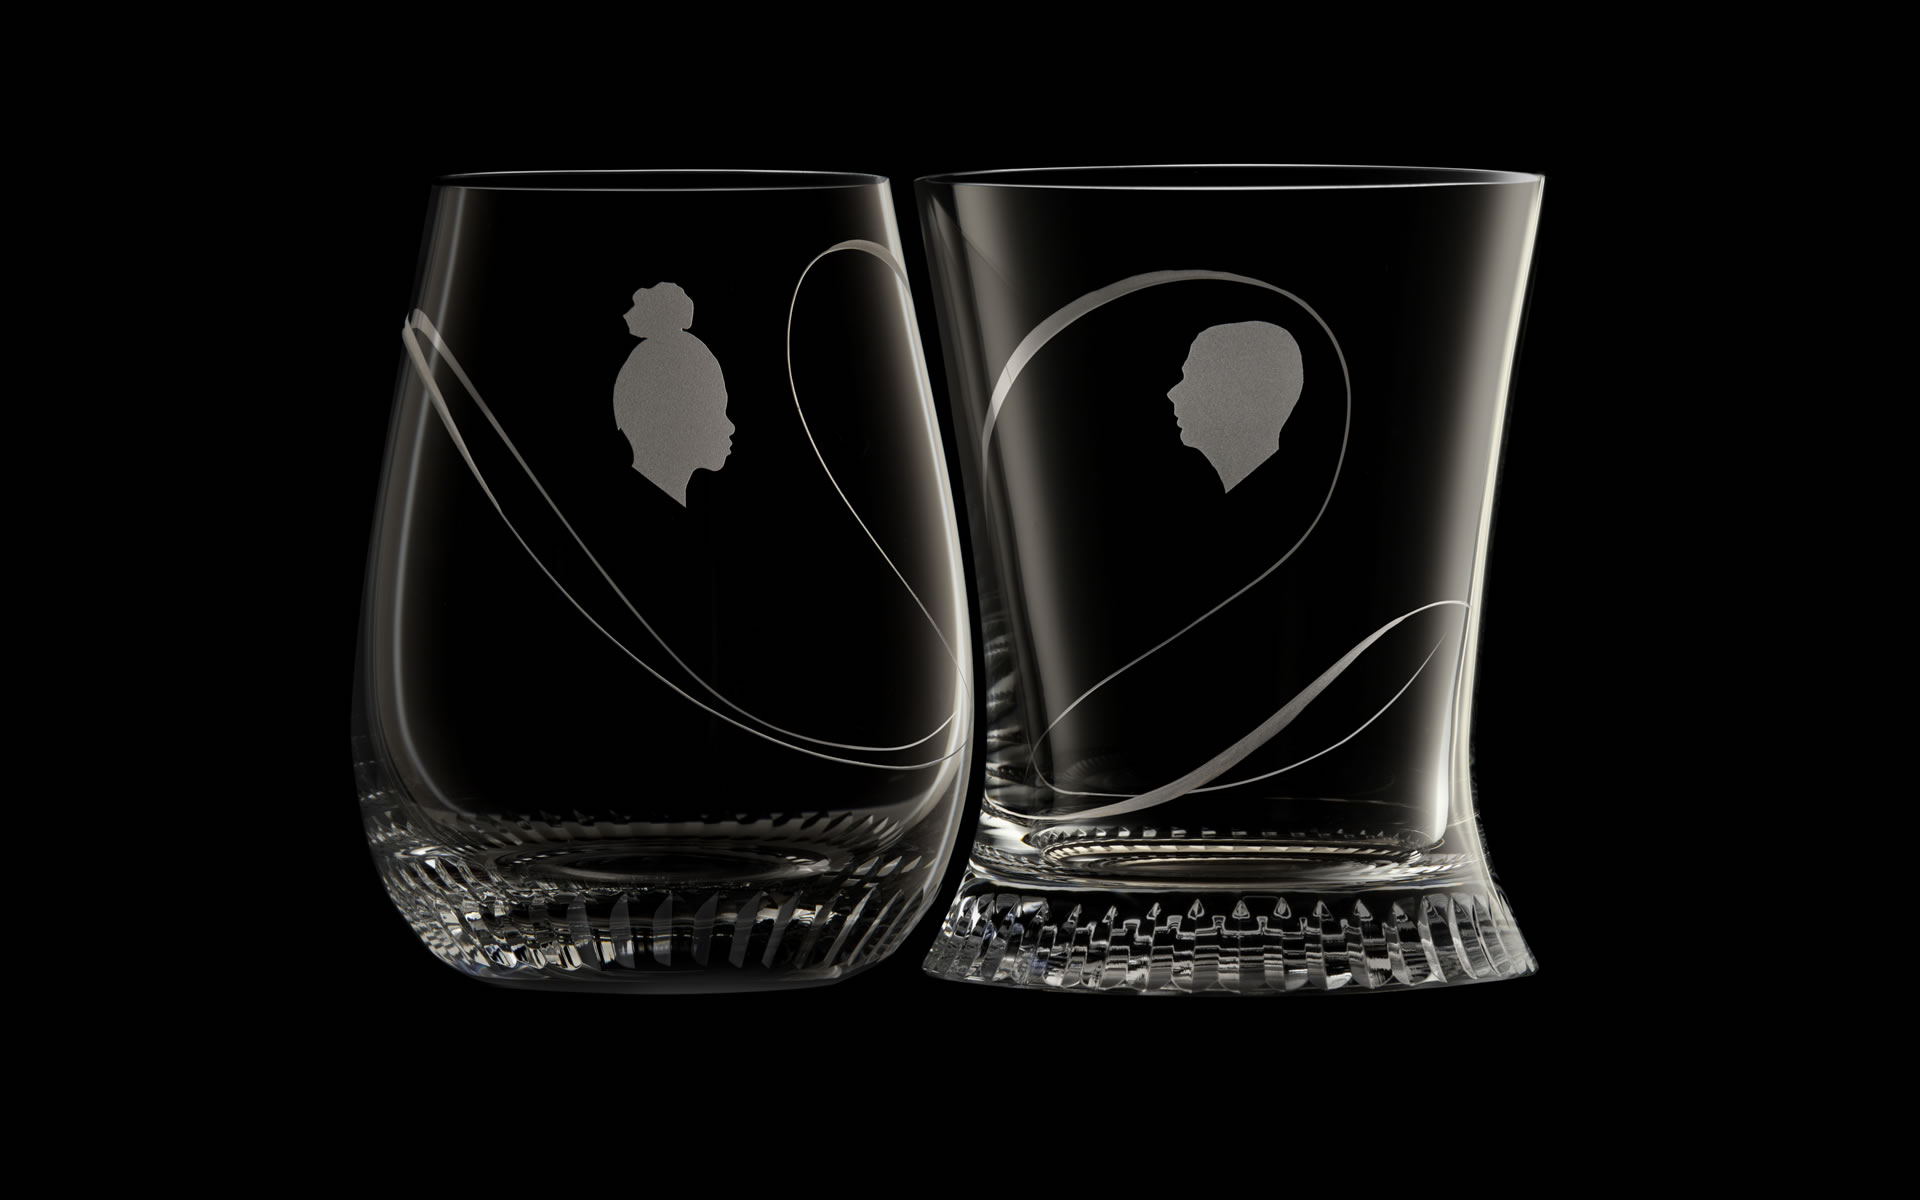 Tumblers For Two Bcxsy And Lobmeyr For Vienna Design Week